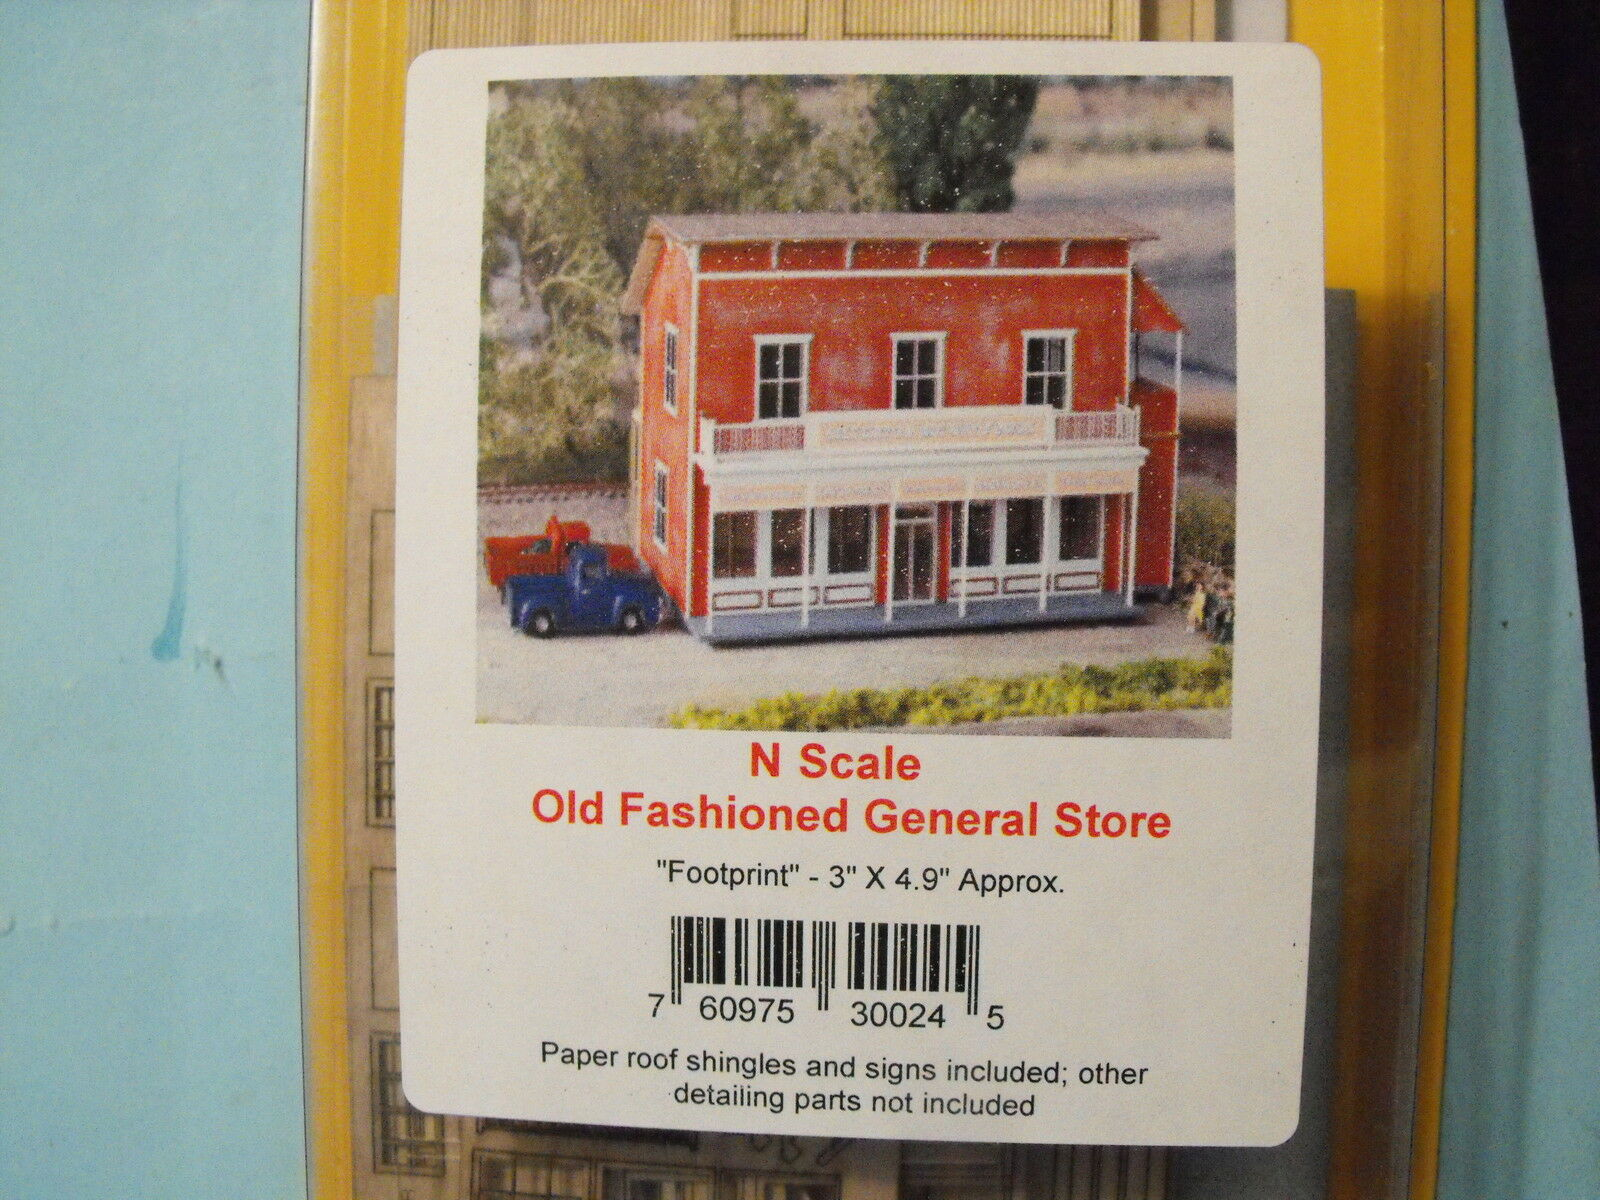 N SCALE OLD FASHIONED GENERAL STORE   BY NORTHEASTERN